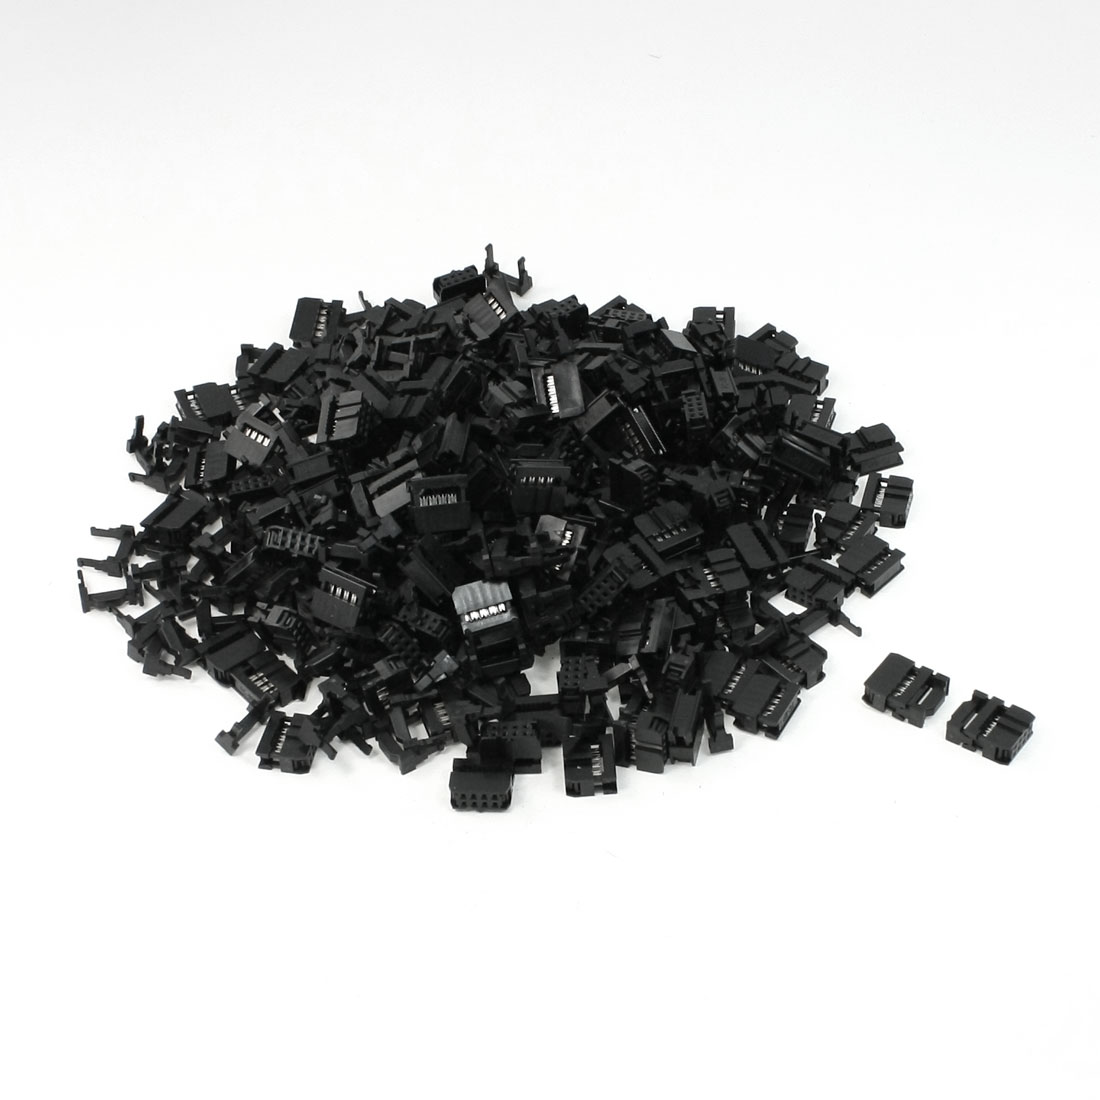 200 Pcs 2 Rows 8 Pin IDC Socket Connector Male Header 2.2mm FC-8P Black